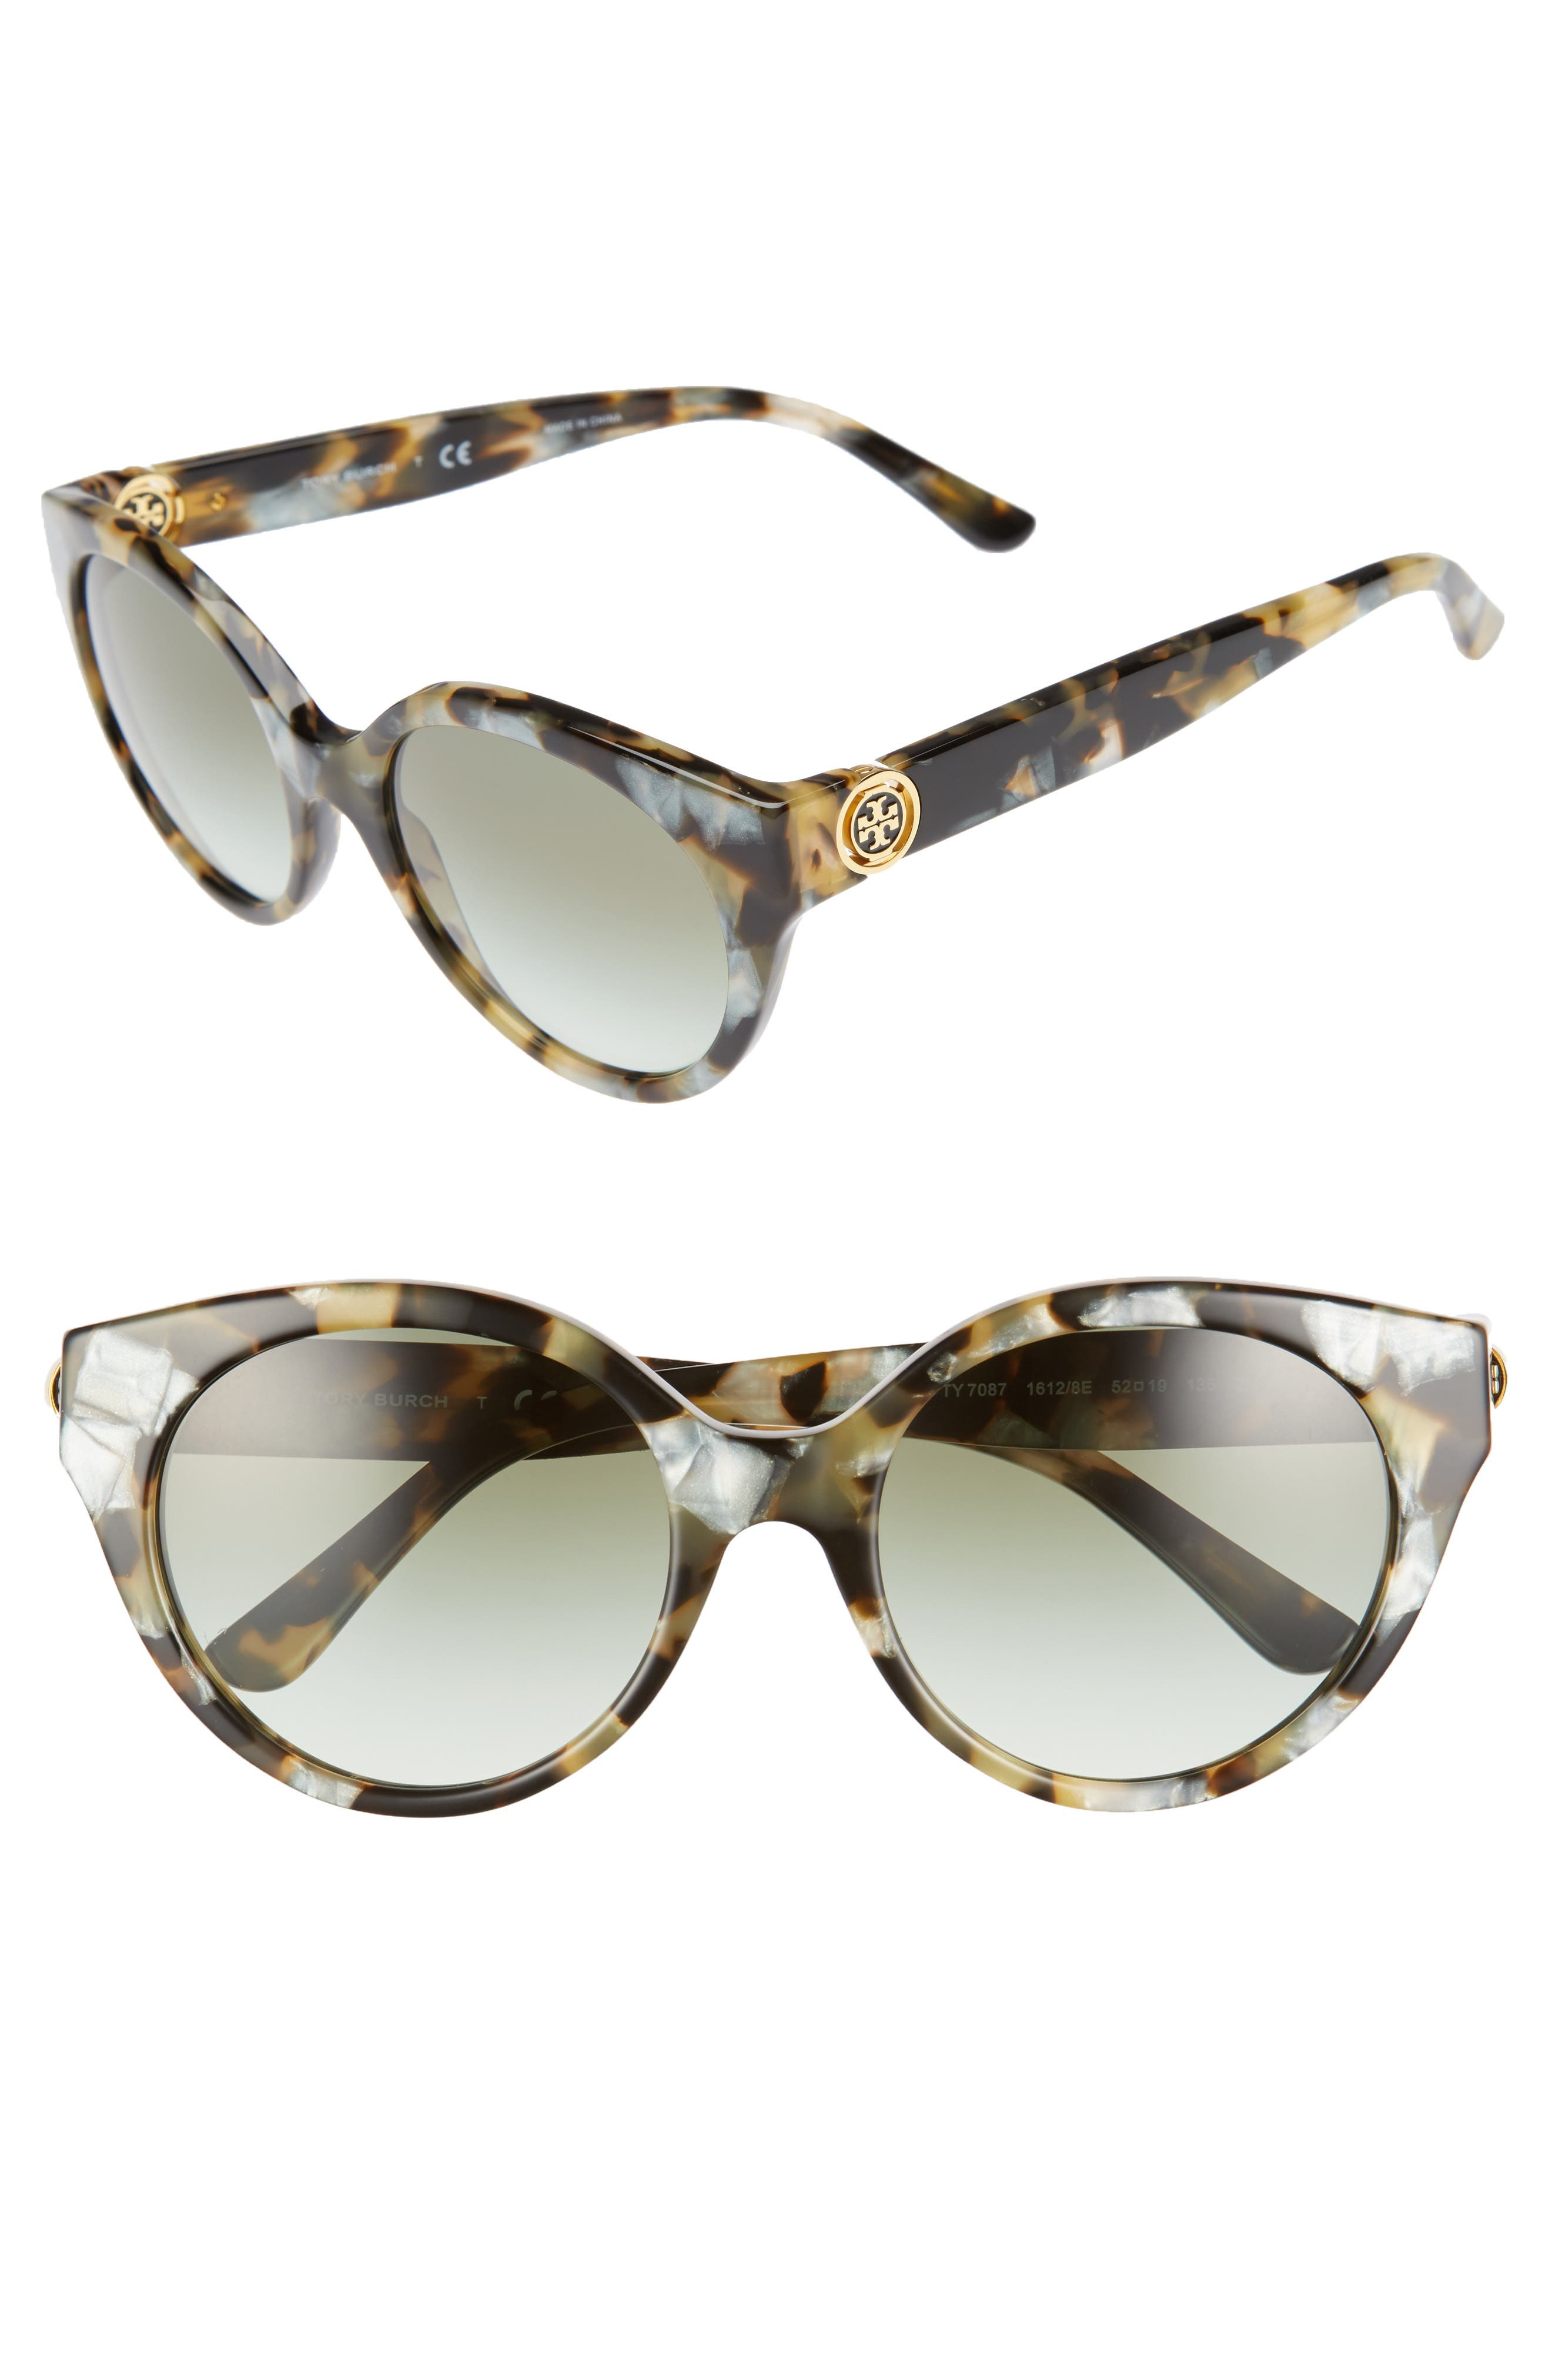 Tory Burch 52mm Retro Sunglasses